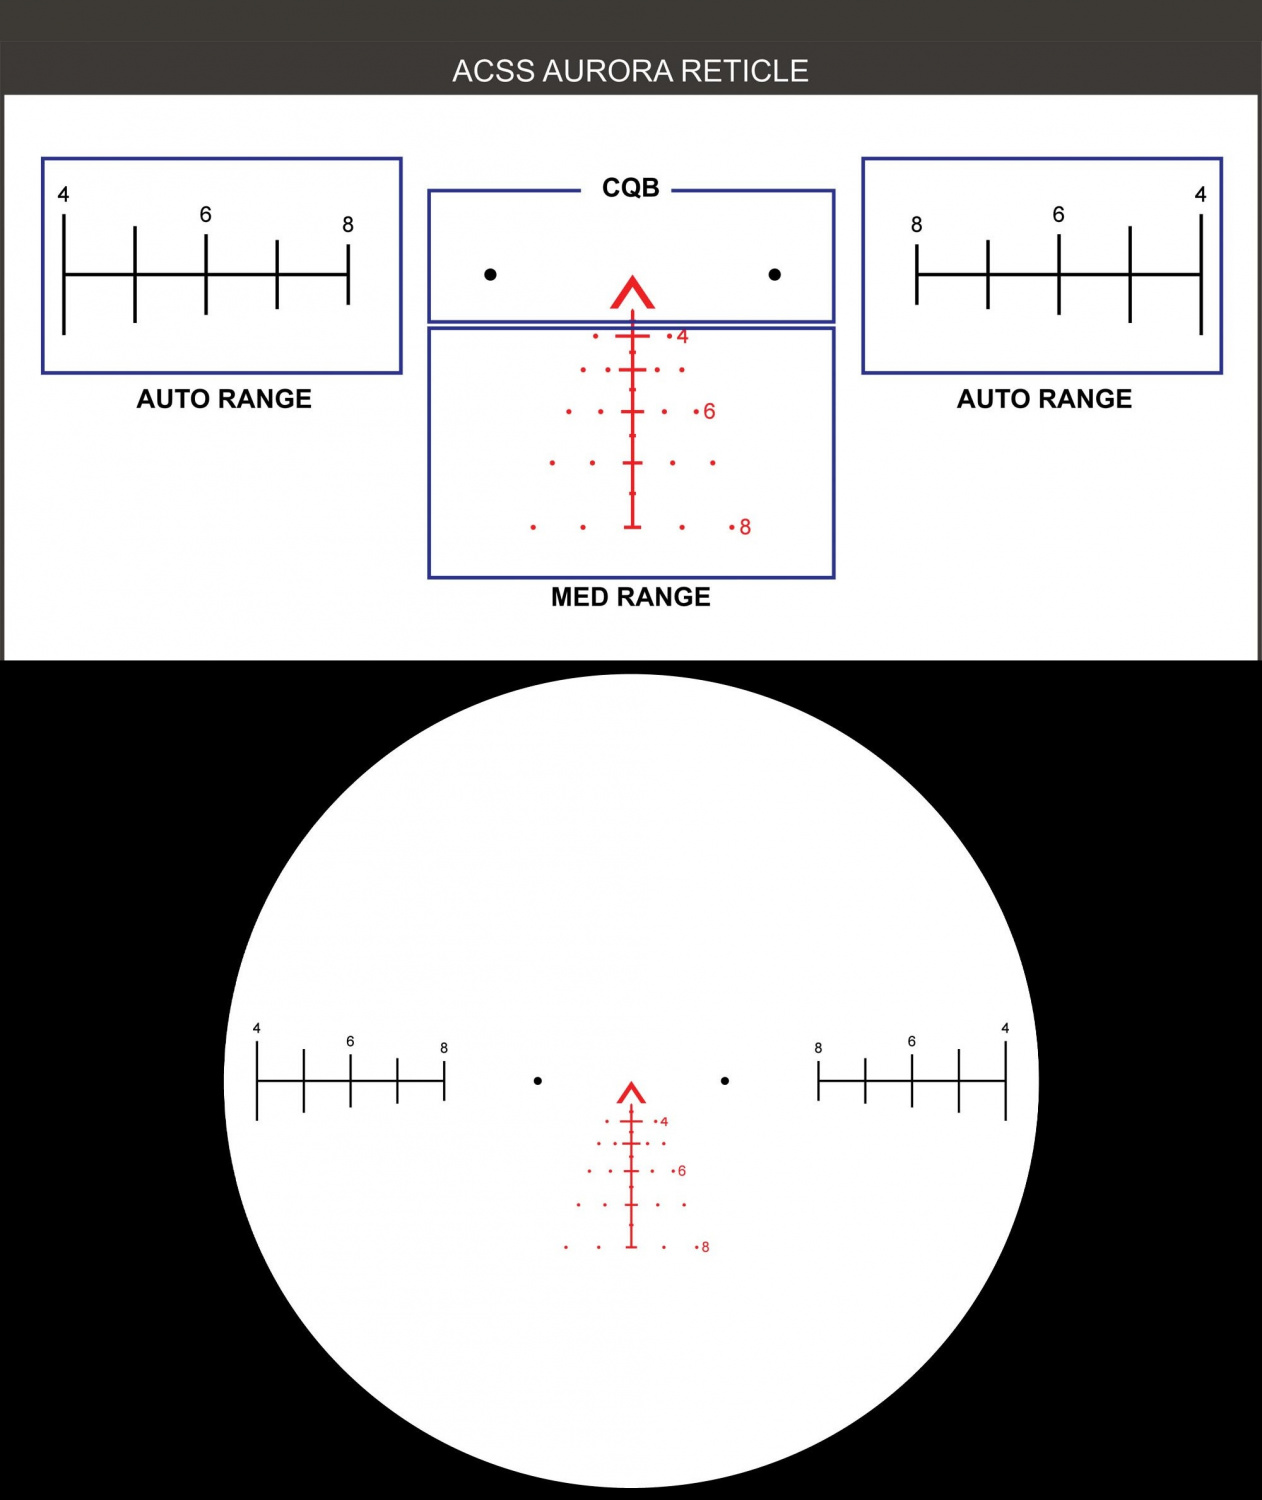 The Aurora ACSS reticle explained, and a view of how it looks when you're behind the scope.